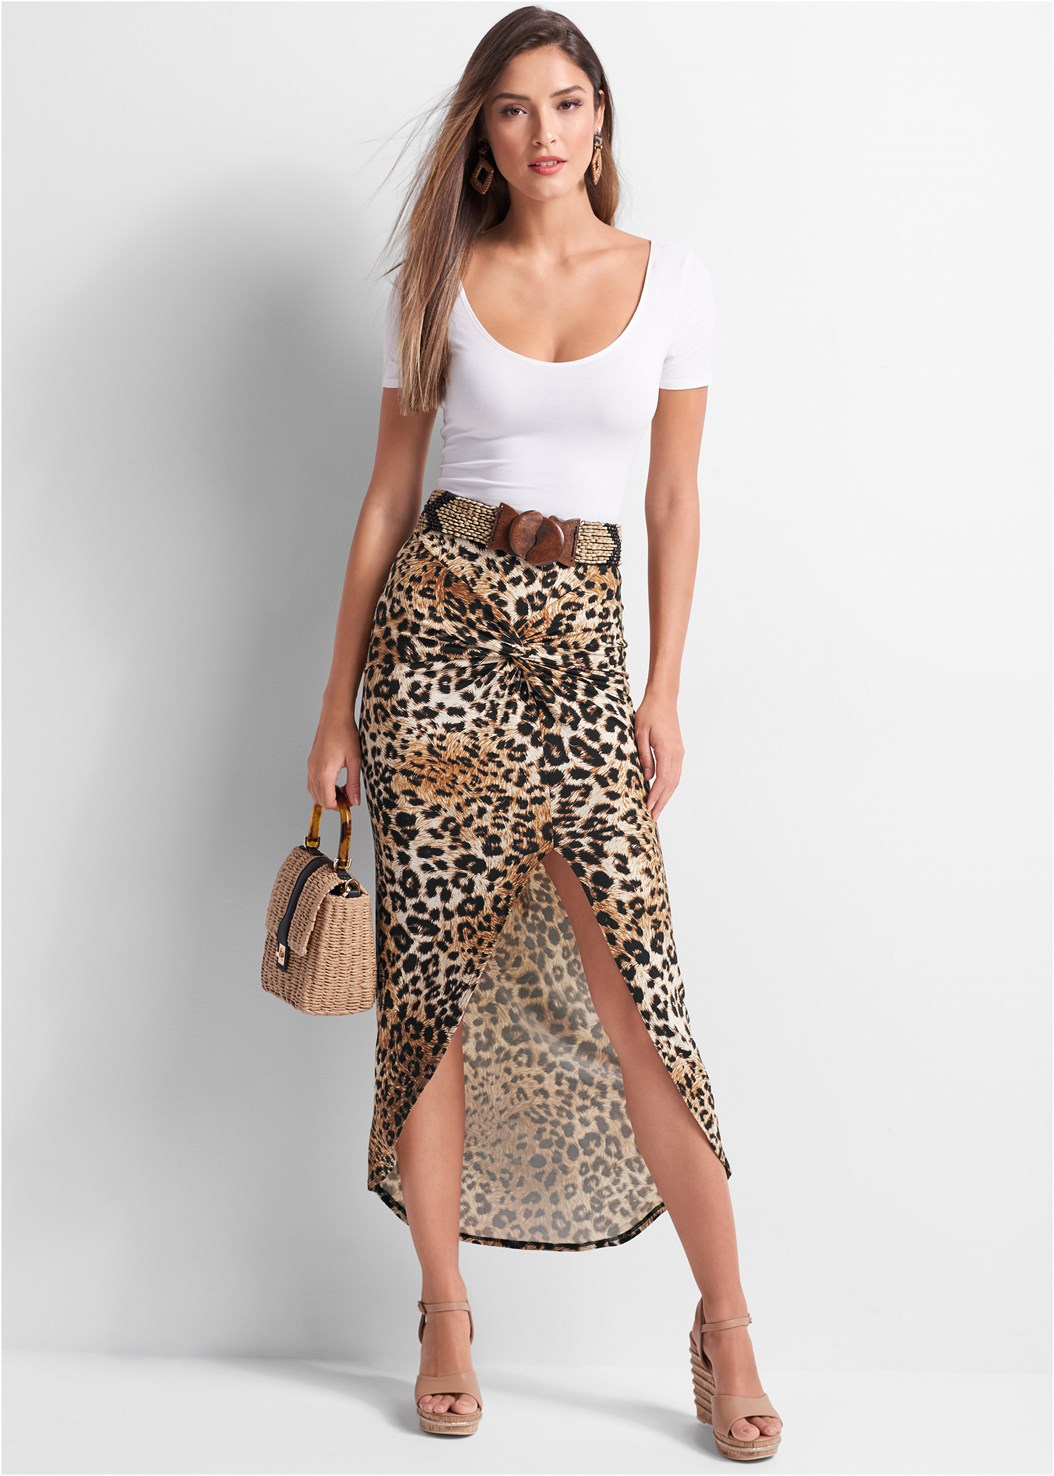 Leopard Print Maxi Skirt,Scoop Neck Bodysuit,Push Up Bra Buy 2 For $40,Metallic Stripe Wedges,Wicker Straw Bag